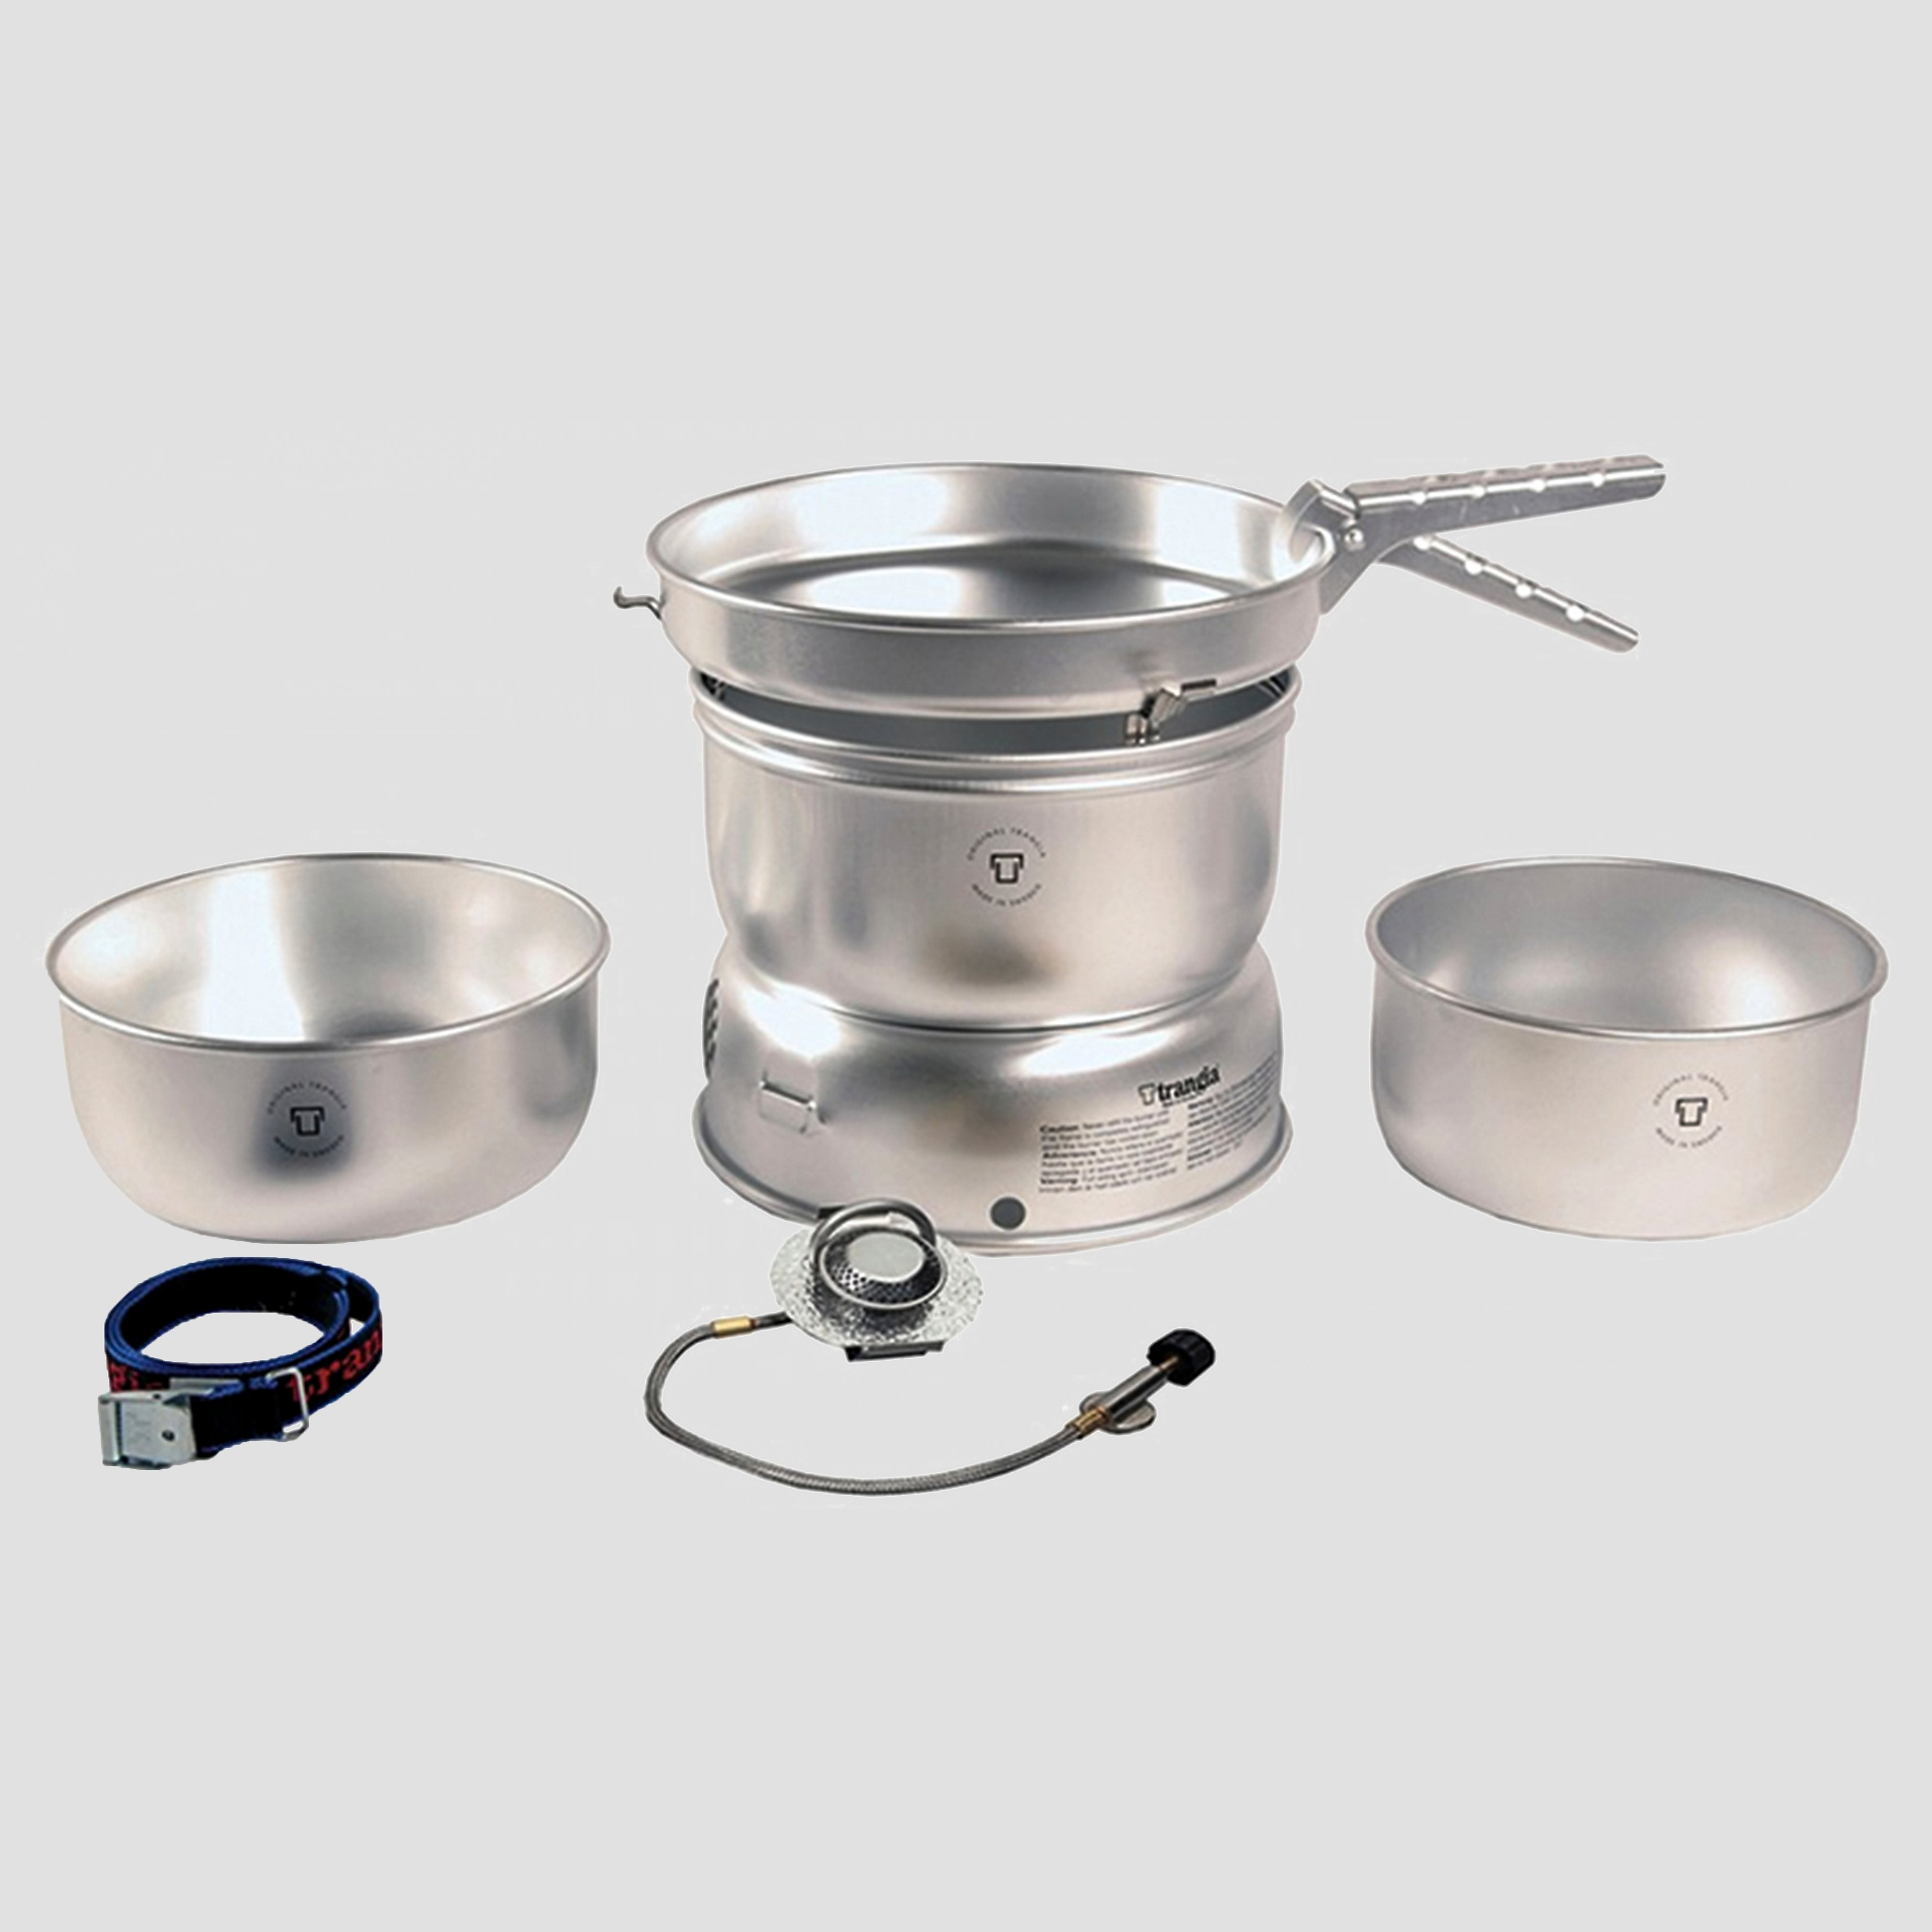 TRANGIA 27-1 Cooking System